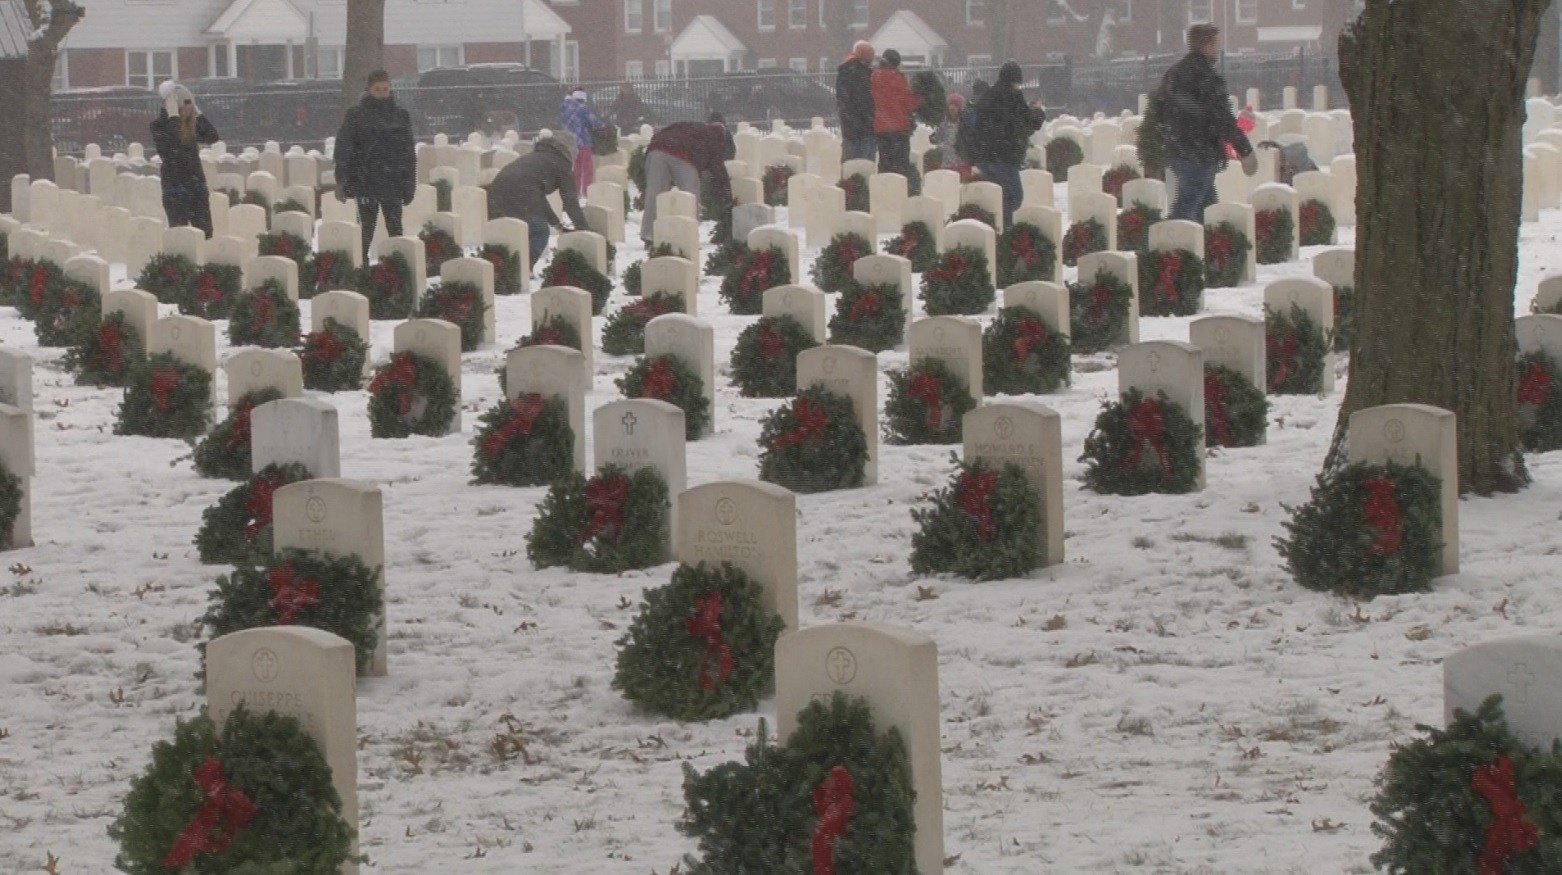 Volunteers place wreaths at Arlington National Cemetery